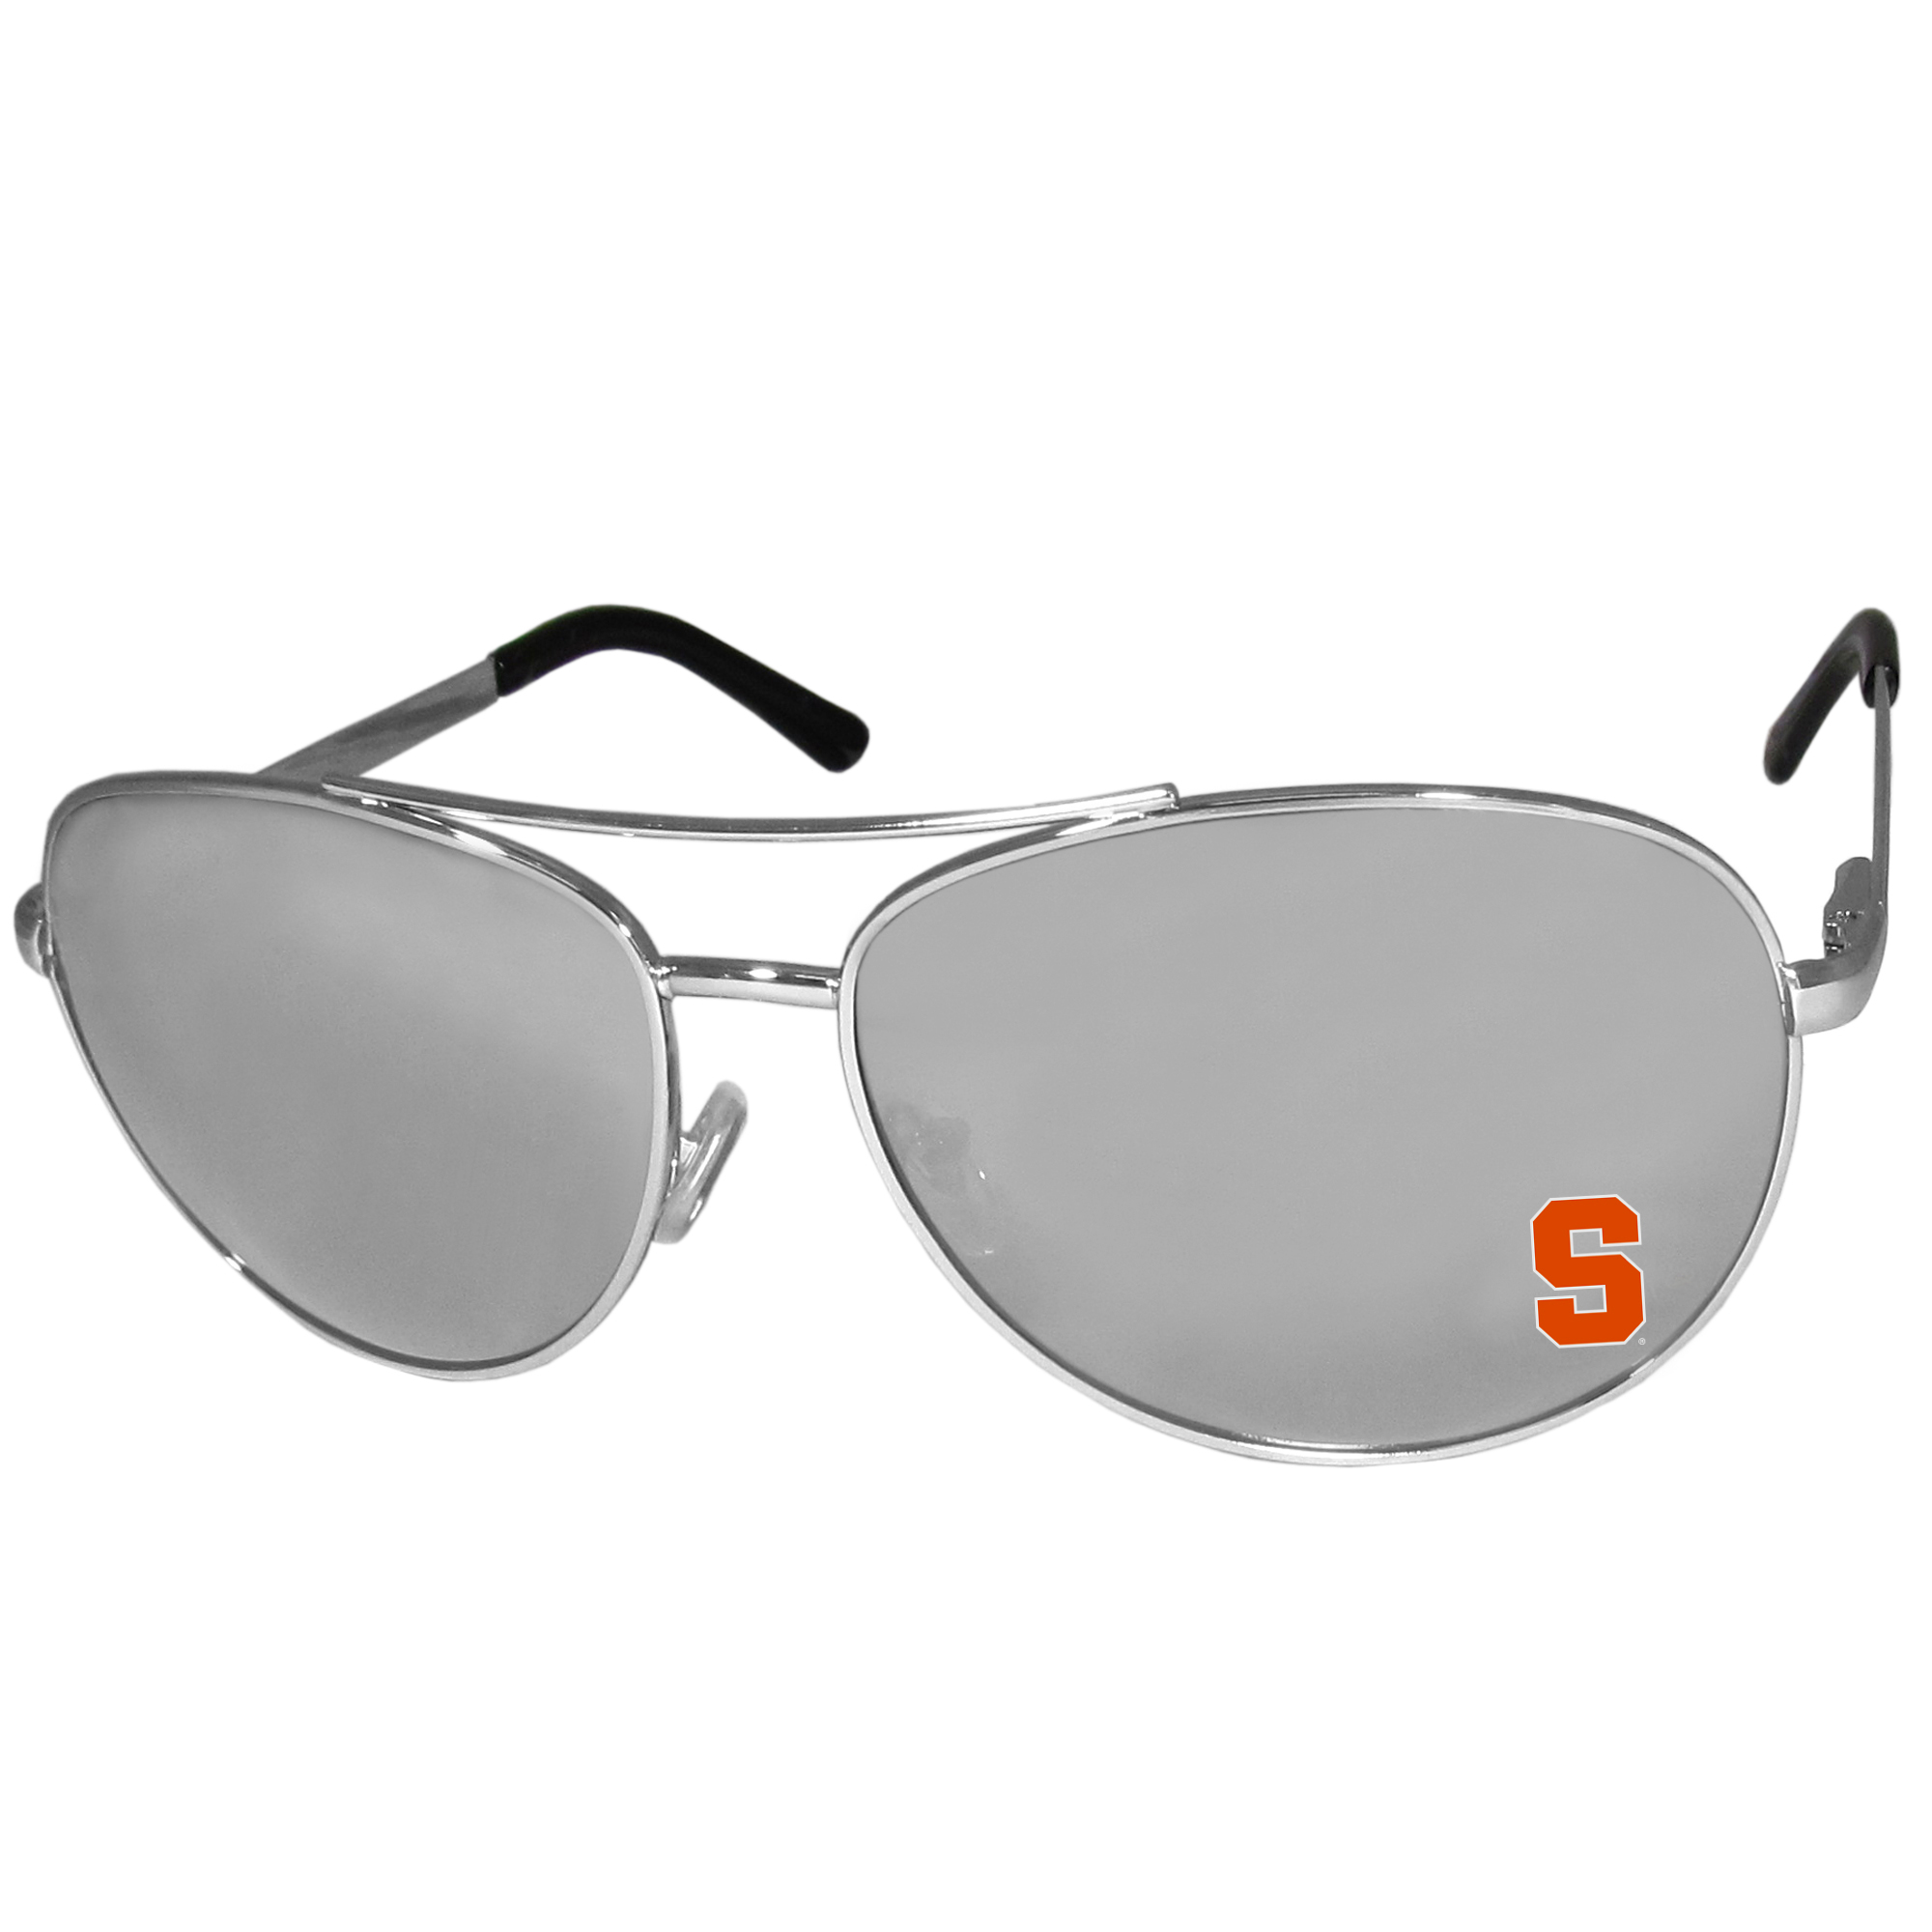 Syracuse Orange Aviator Sunglasses - Our aviator sunglasses have the iconic aviator style with mirrored lenses and metal frames. The glasses feature a silk screened Syracuse Orange logo in the corner of the lense. 100% UVA/UVB protection.